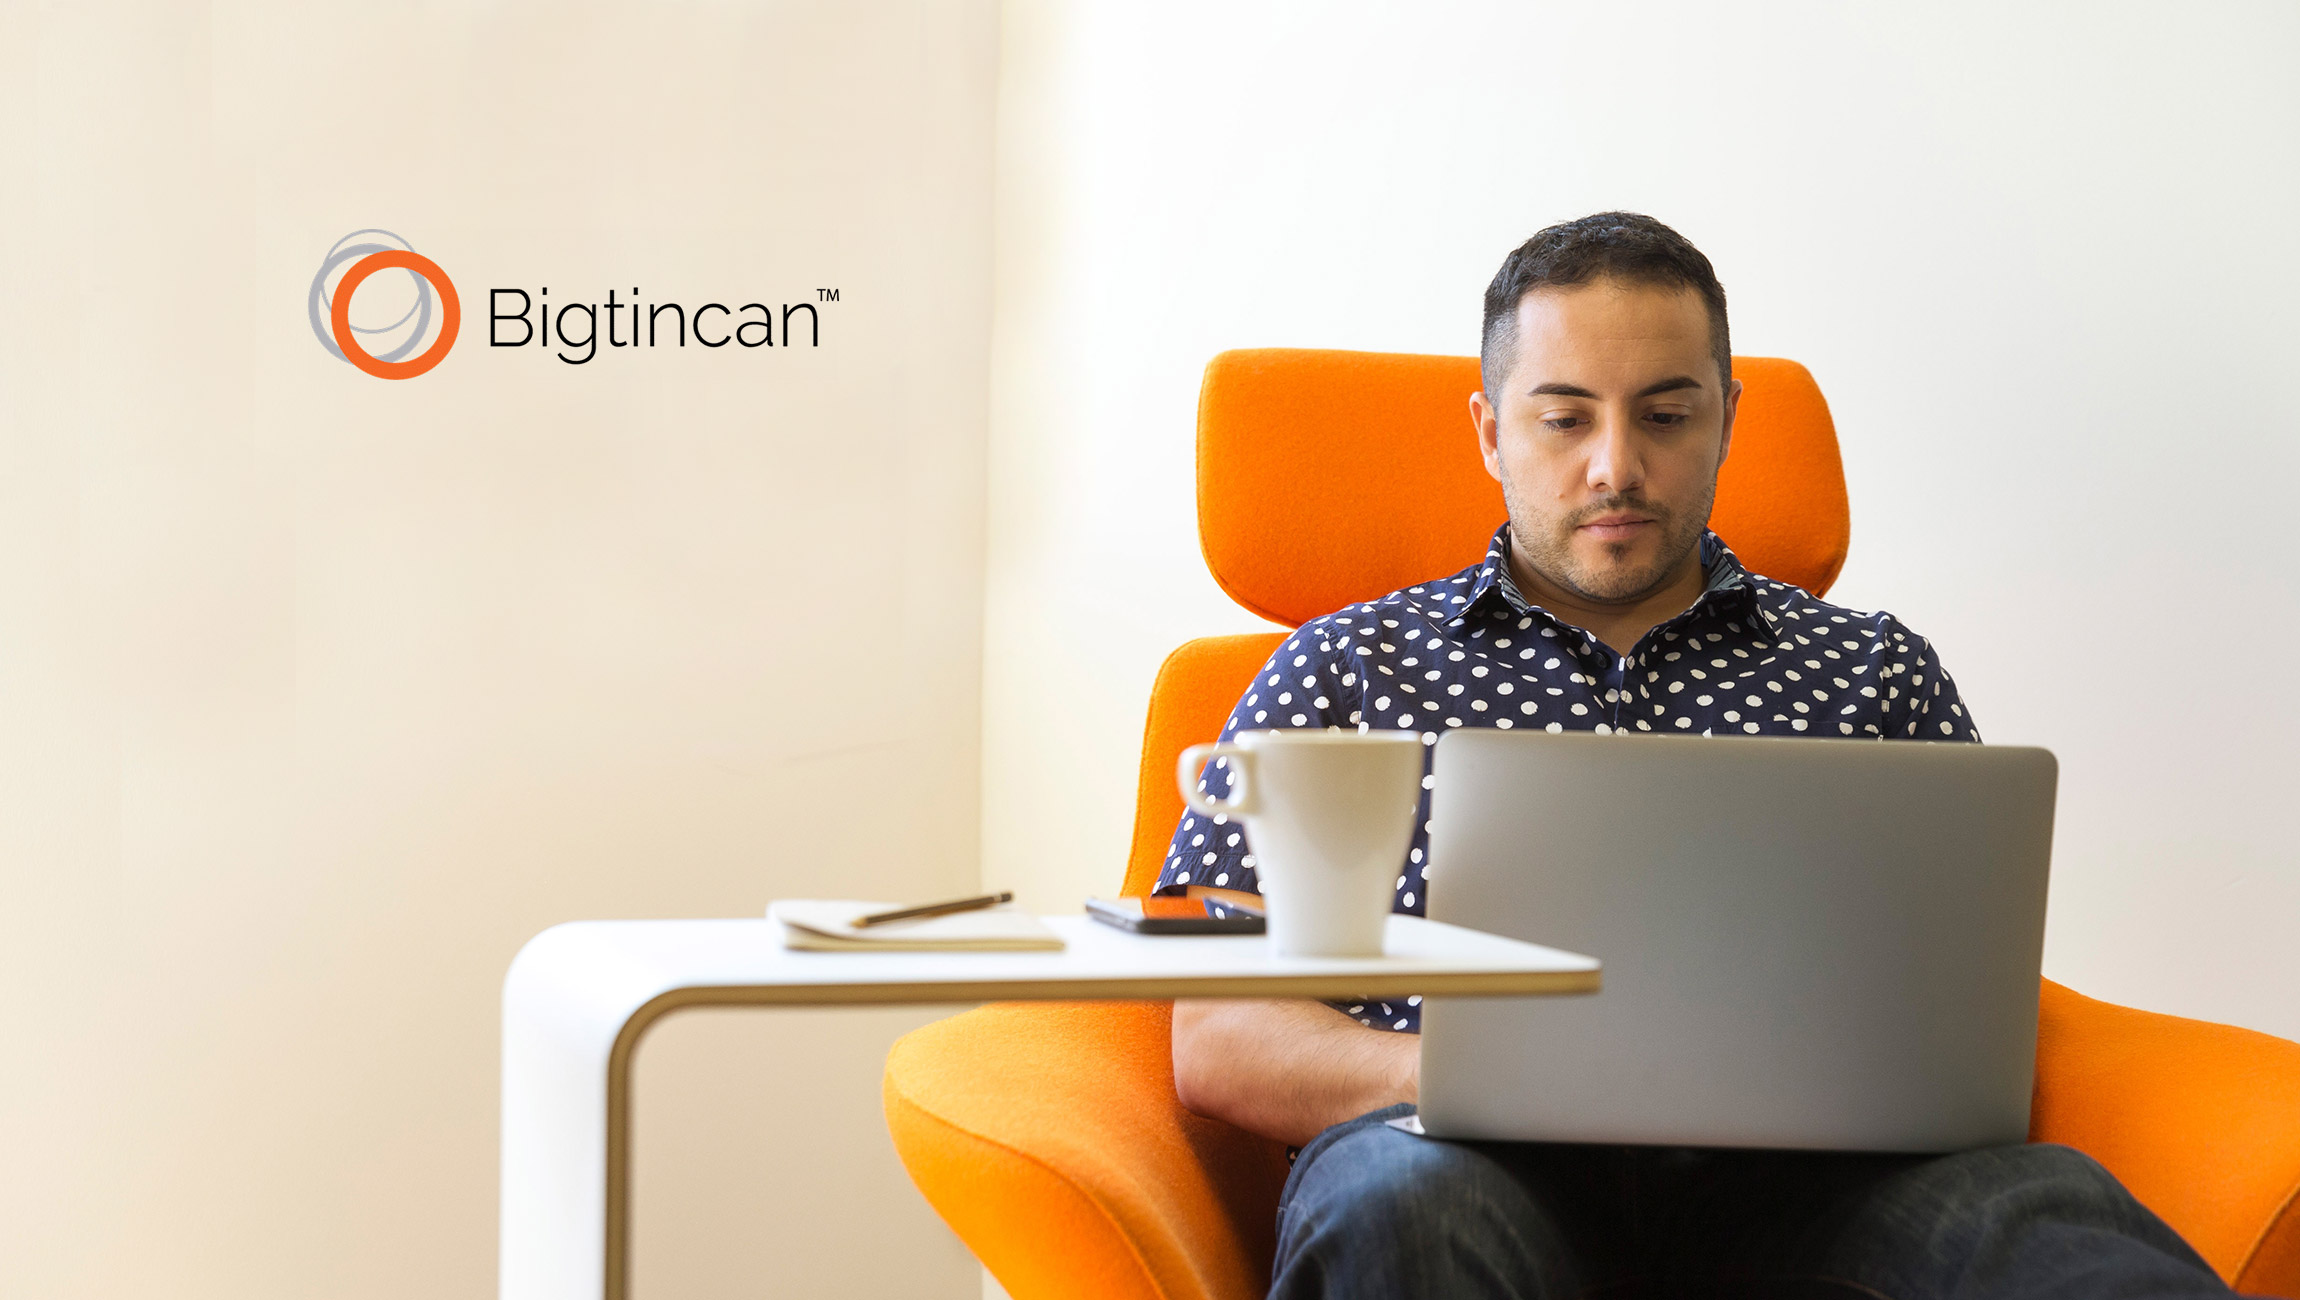 Bigtincan Delivers on Unified Sales Learning, Coaching and Onboarding Platform with Fall Release